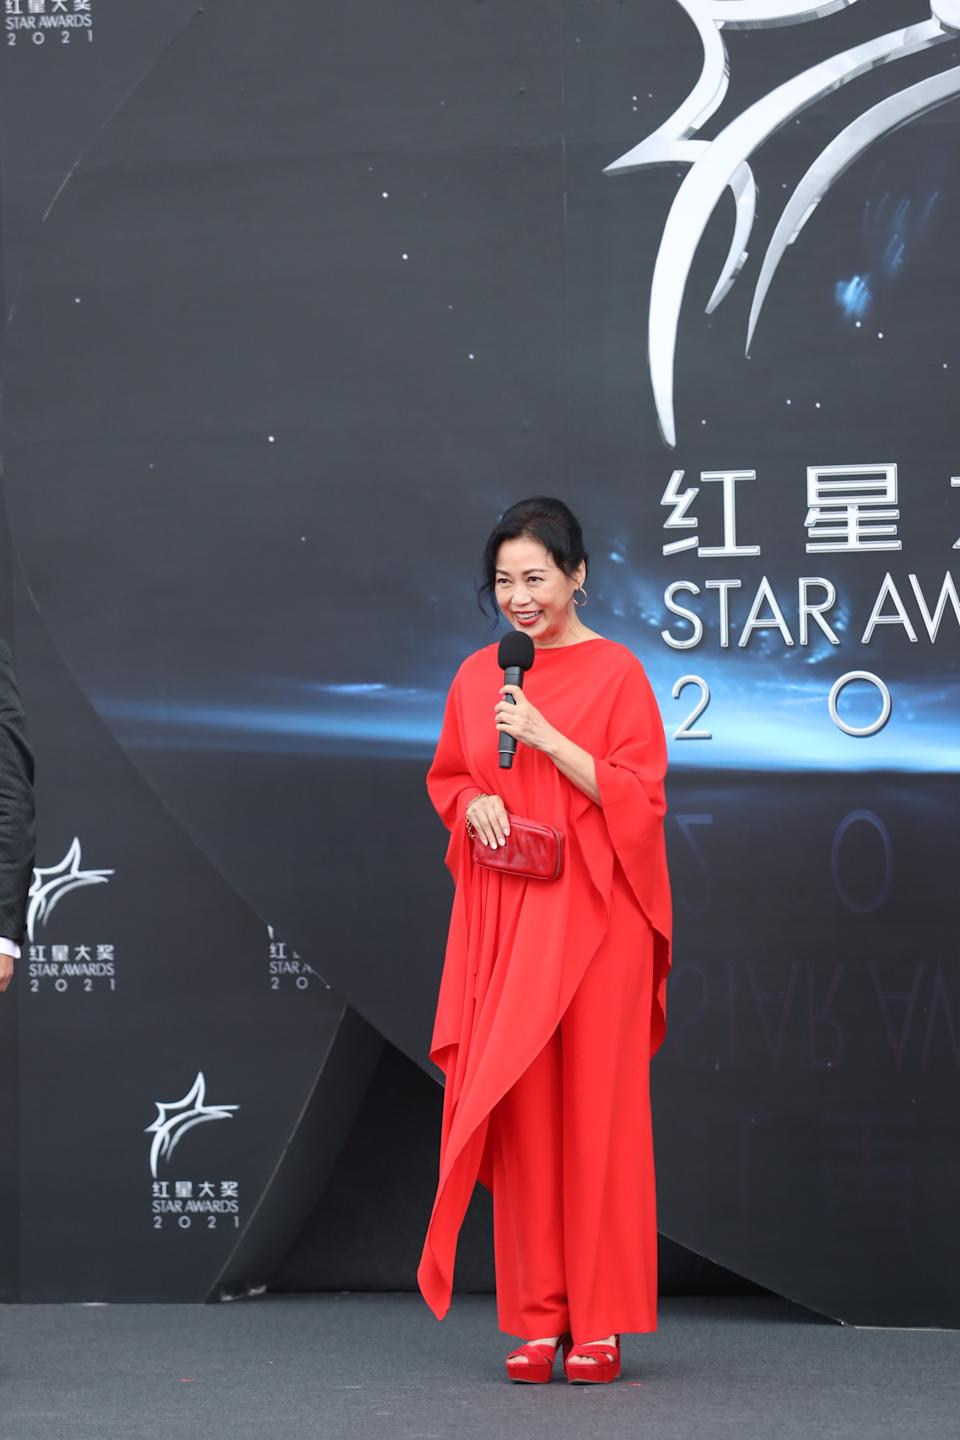 Xiang Yun at Star Awards held at Changi Airport on 18 April 2021. (Photo: Mediacorp)